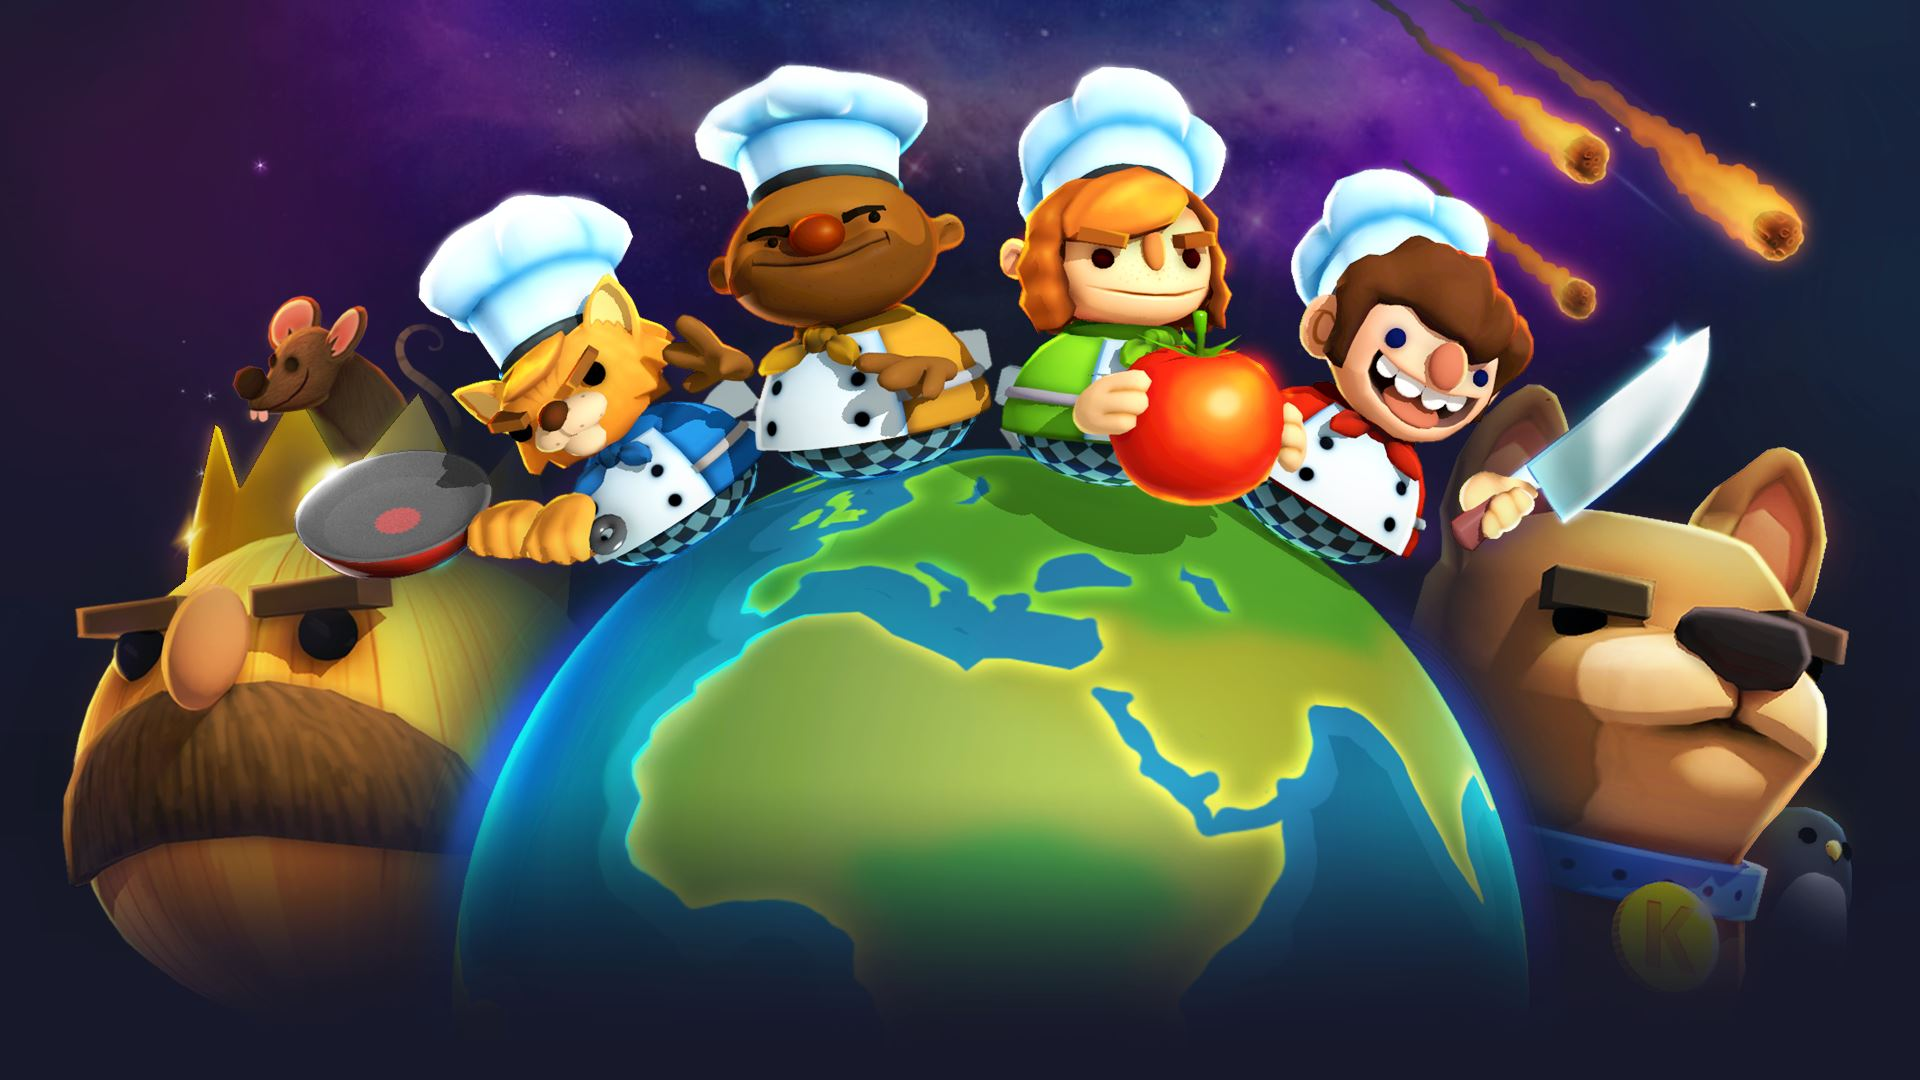 Overcooked comes to Nintendo Switch this week